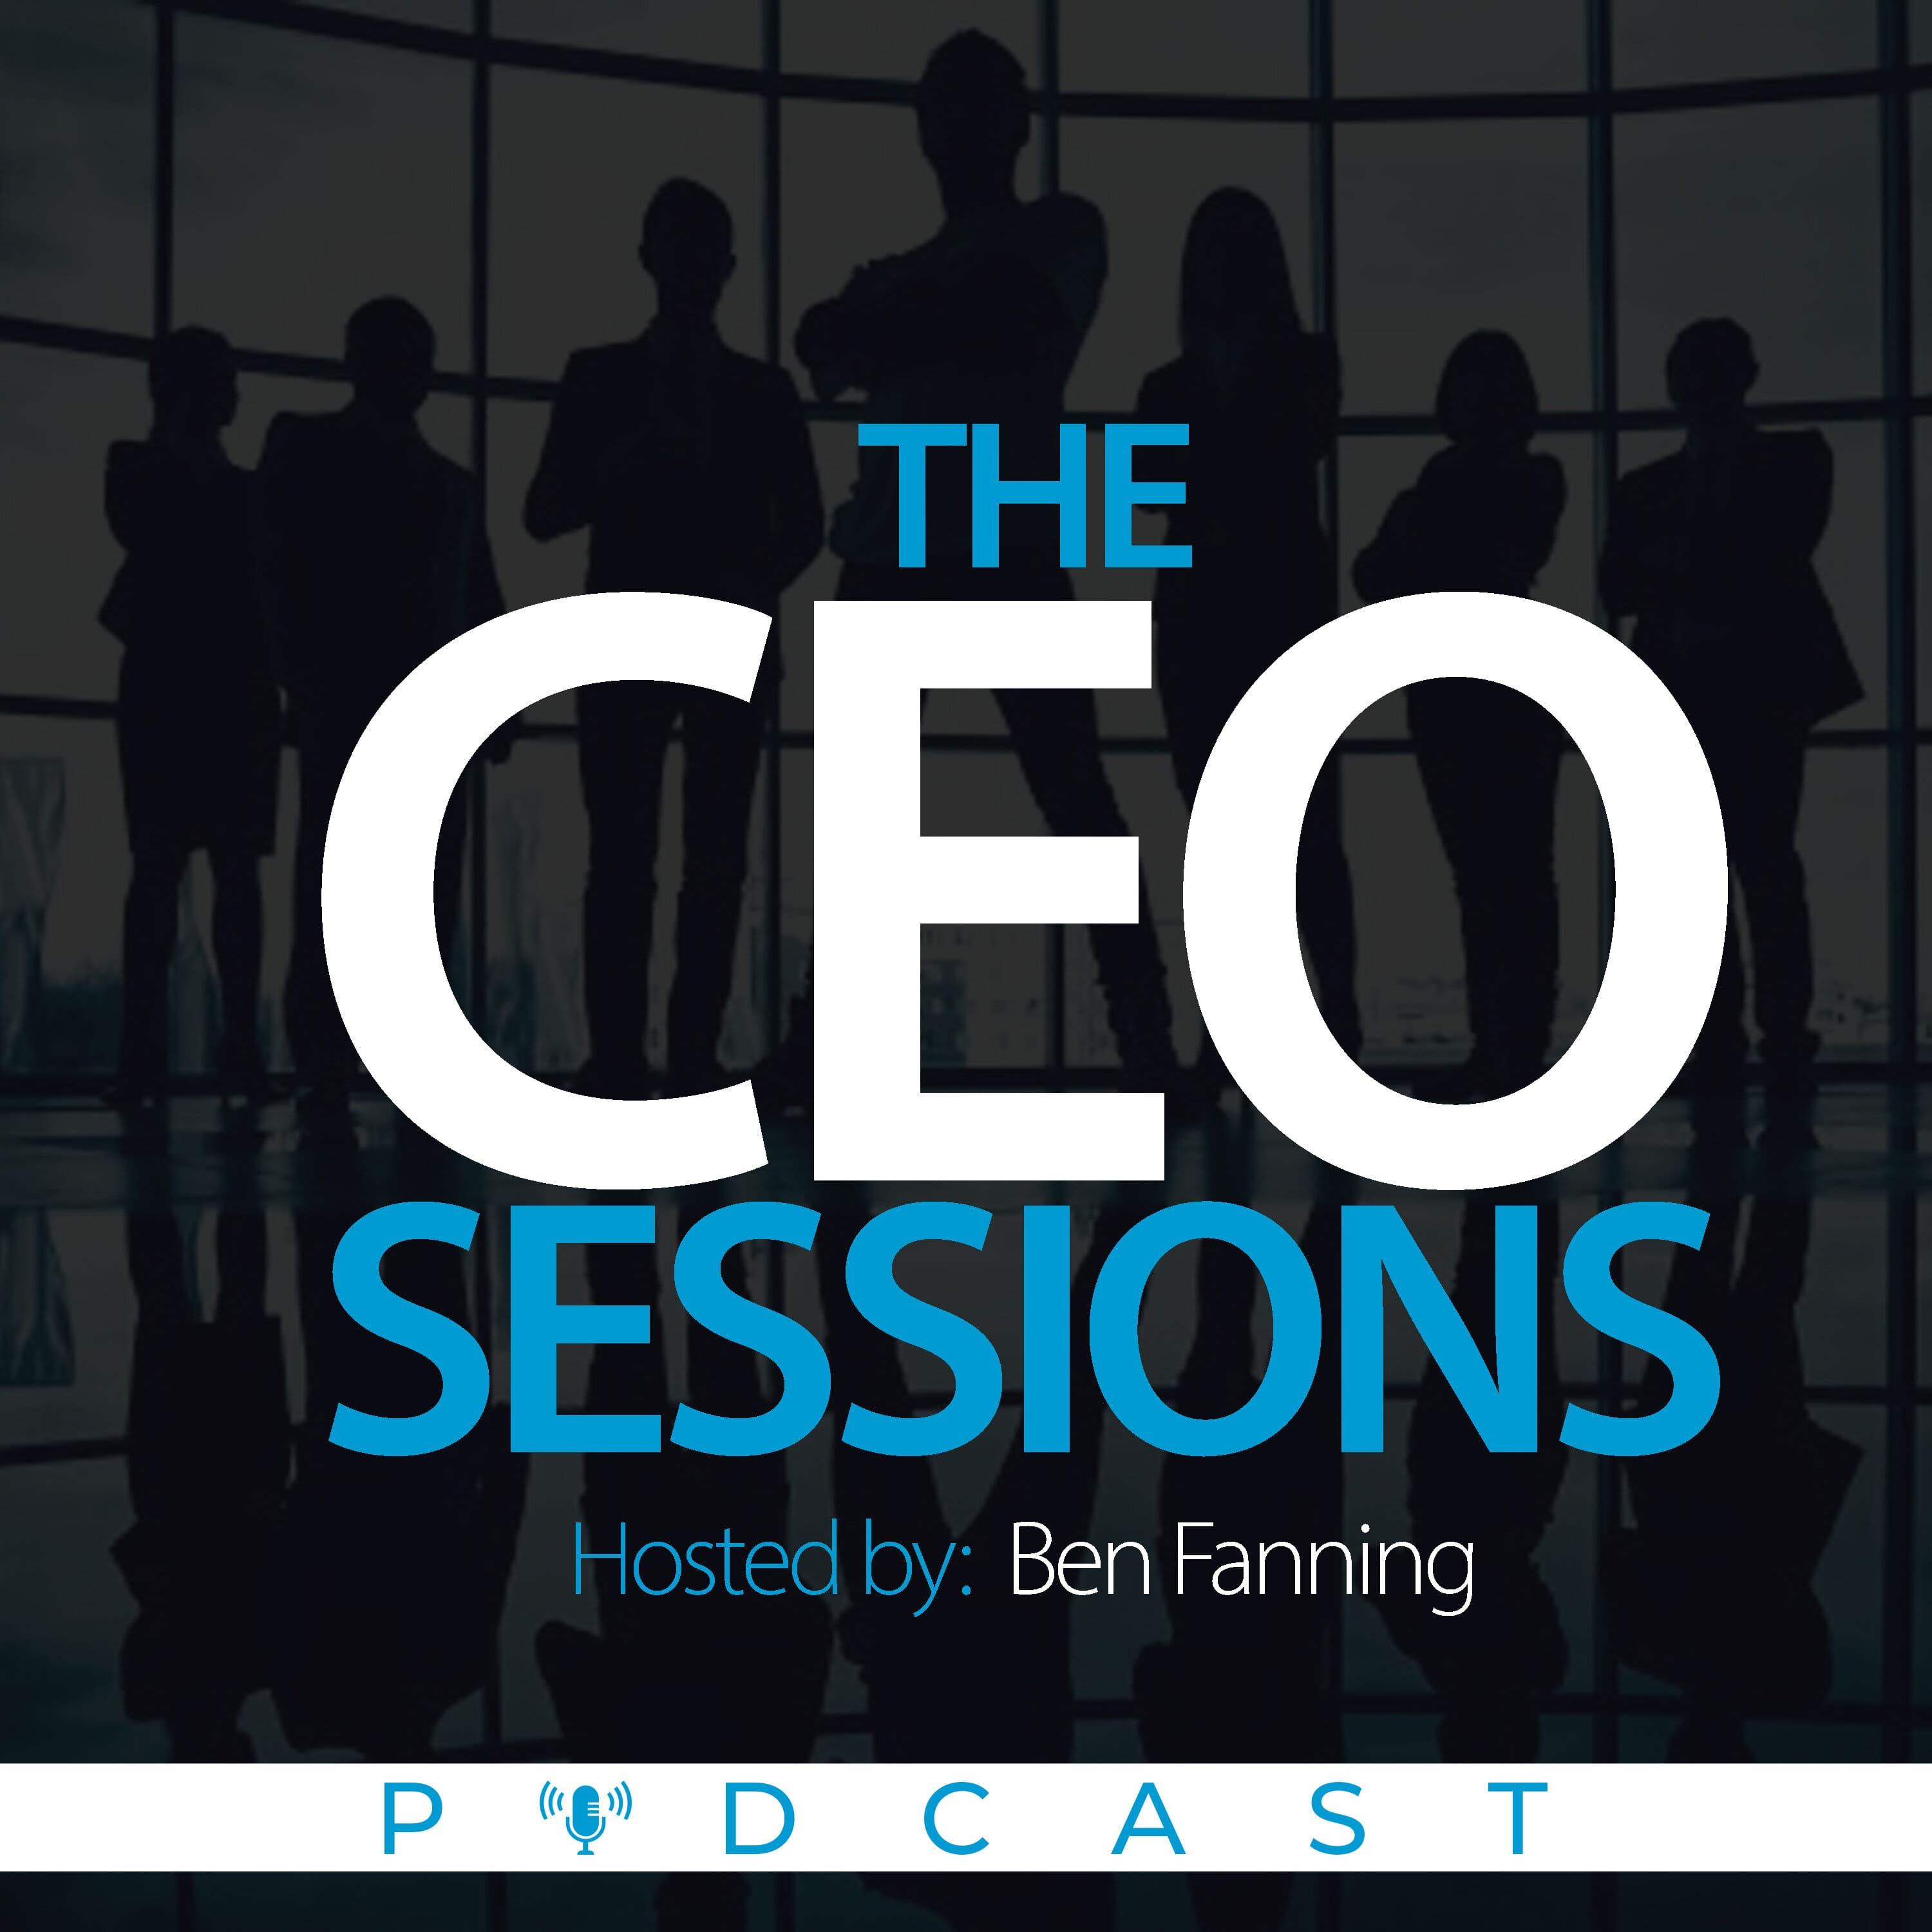 Artwork for podcast The CEO Sessions